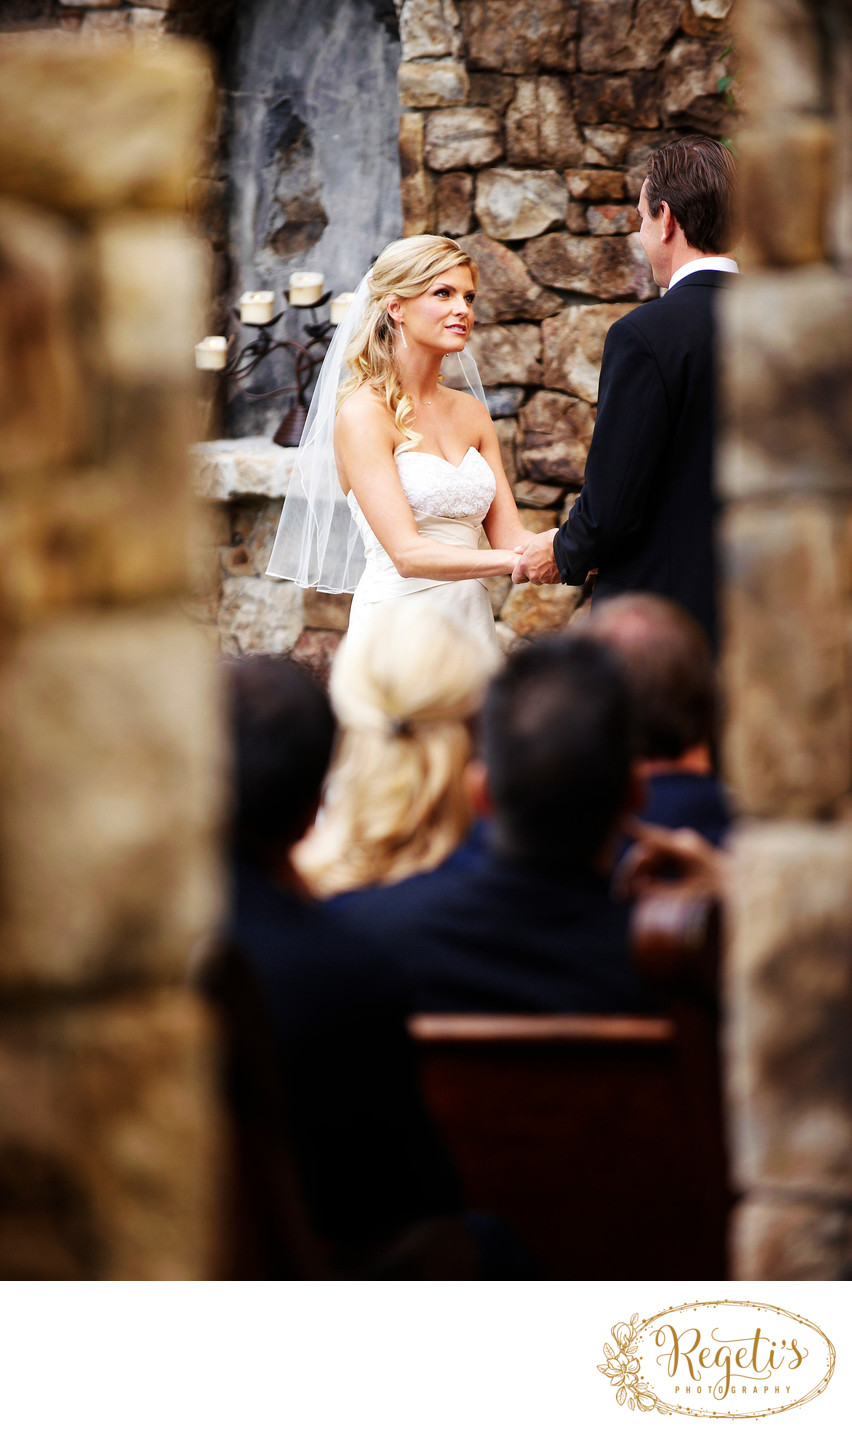 The Vows Chapel Style